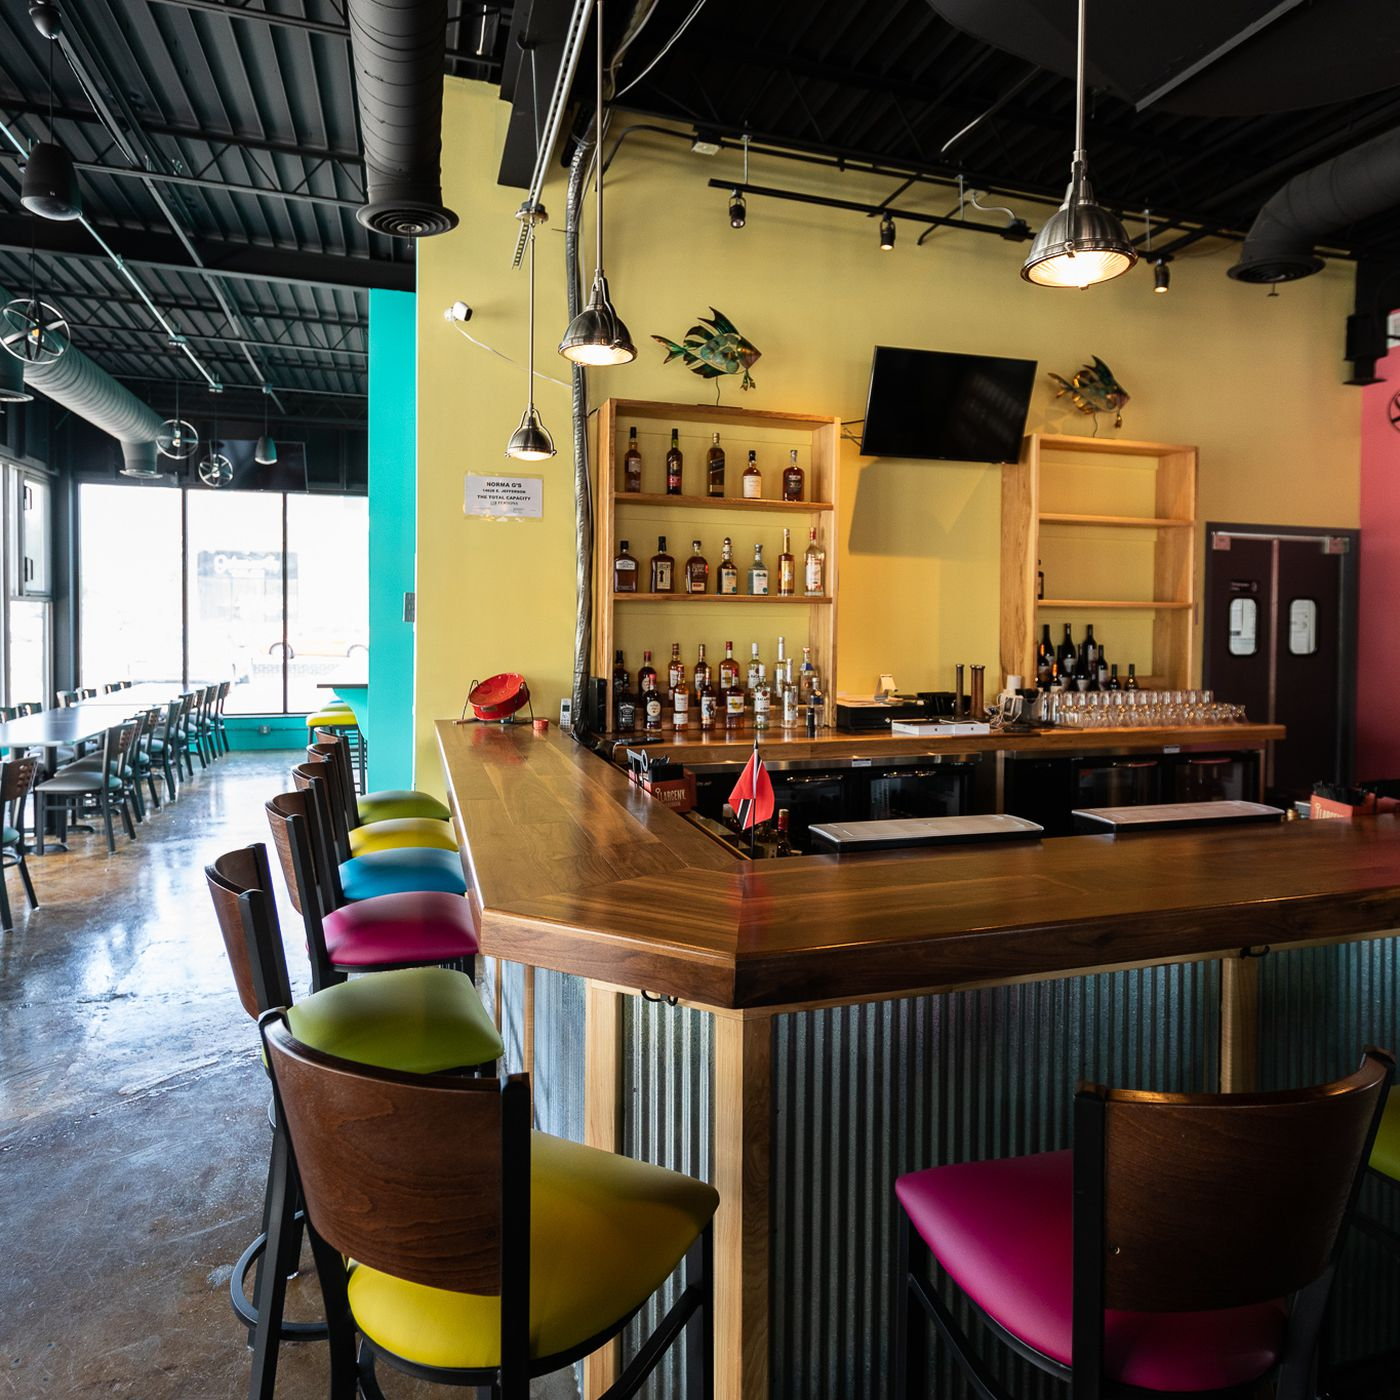 16 Recent Metro Detroit Restaurant and Bar Openings to Know - Eater ...